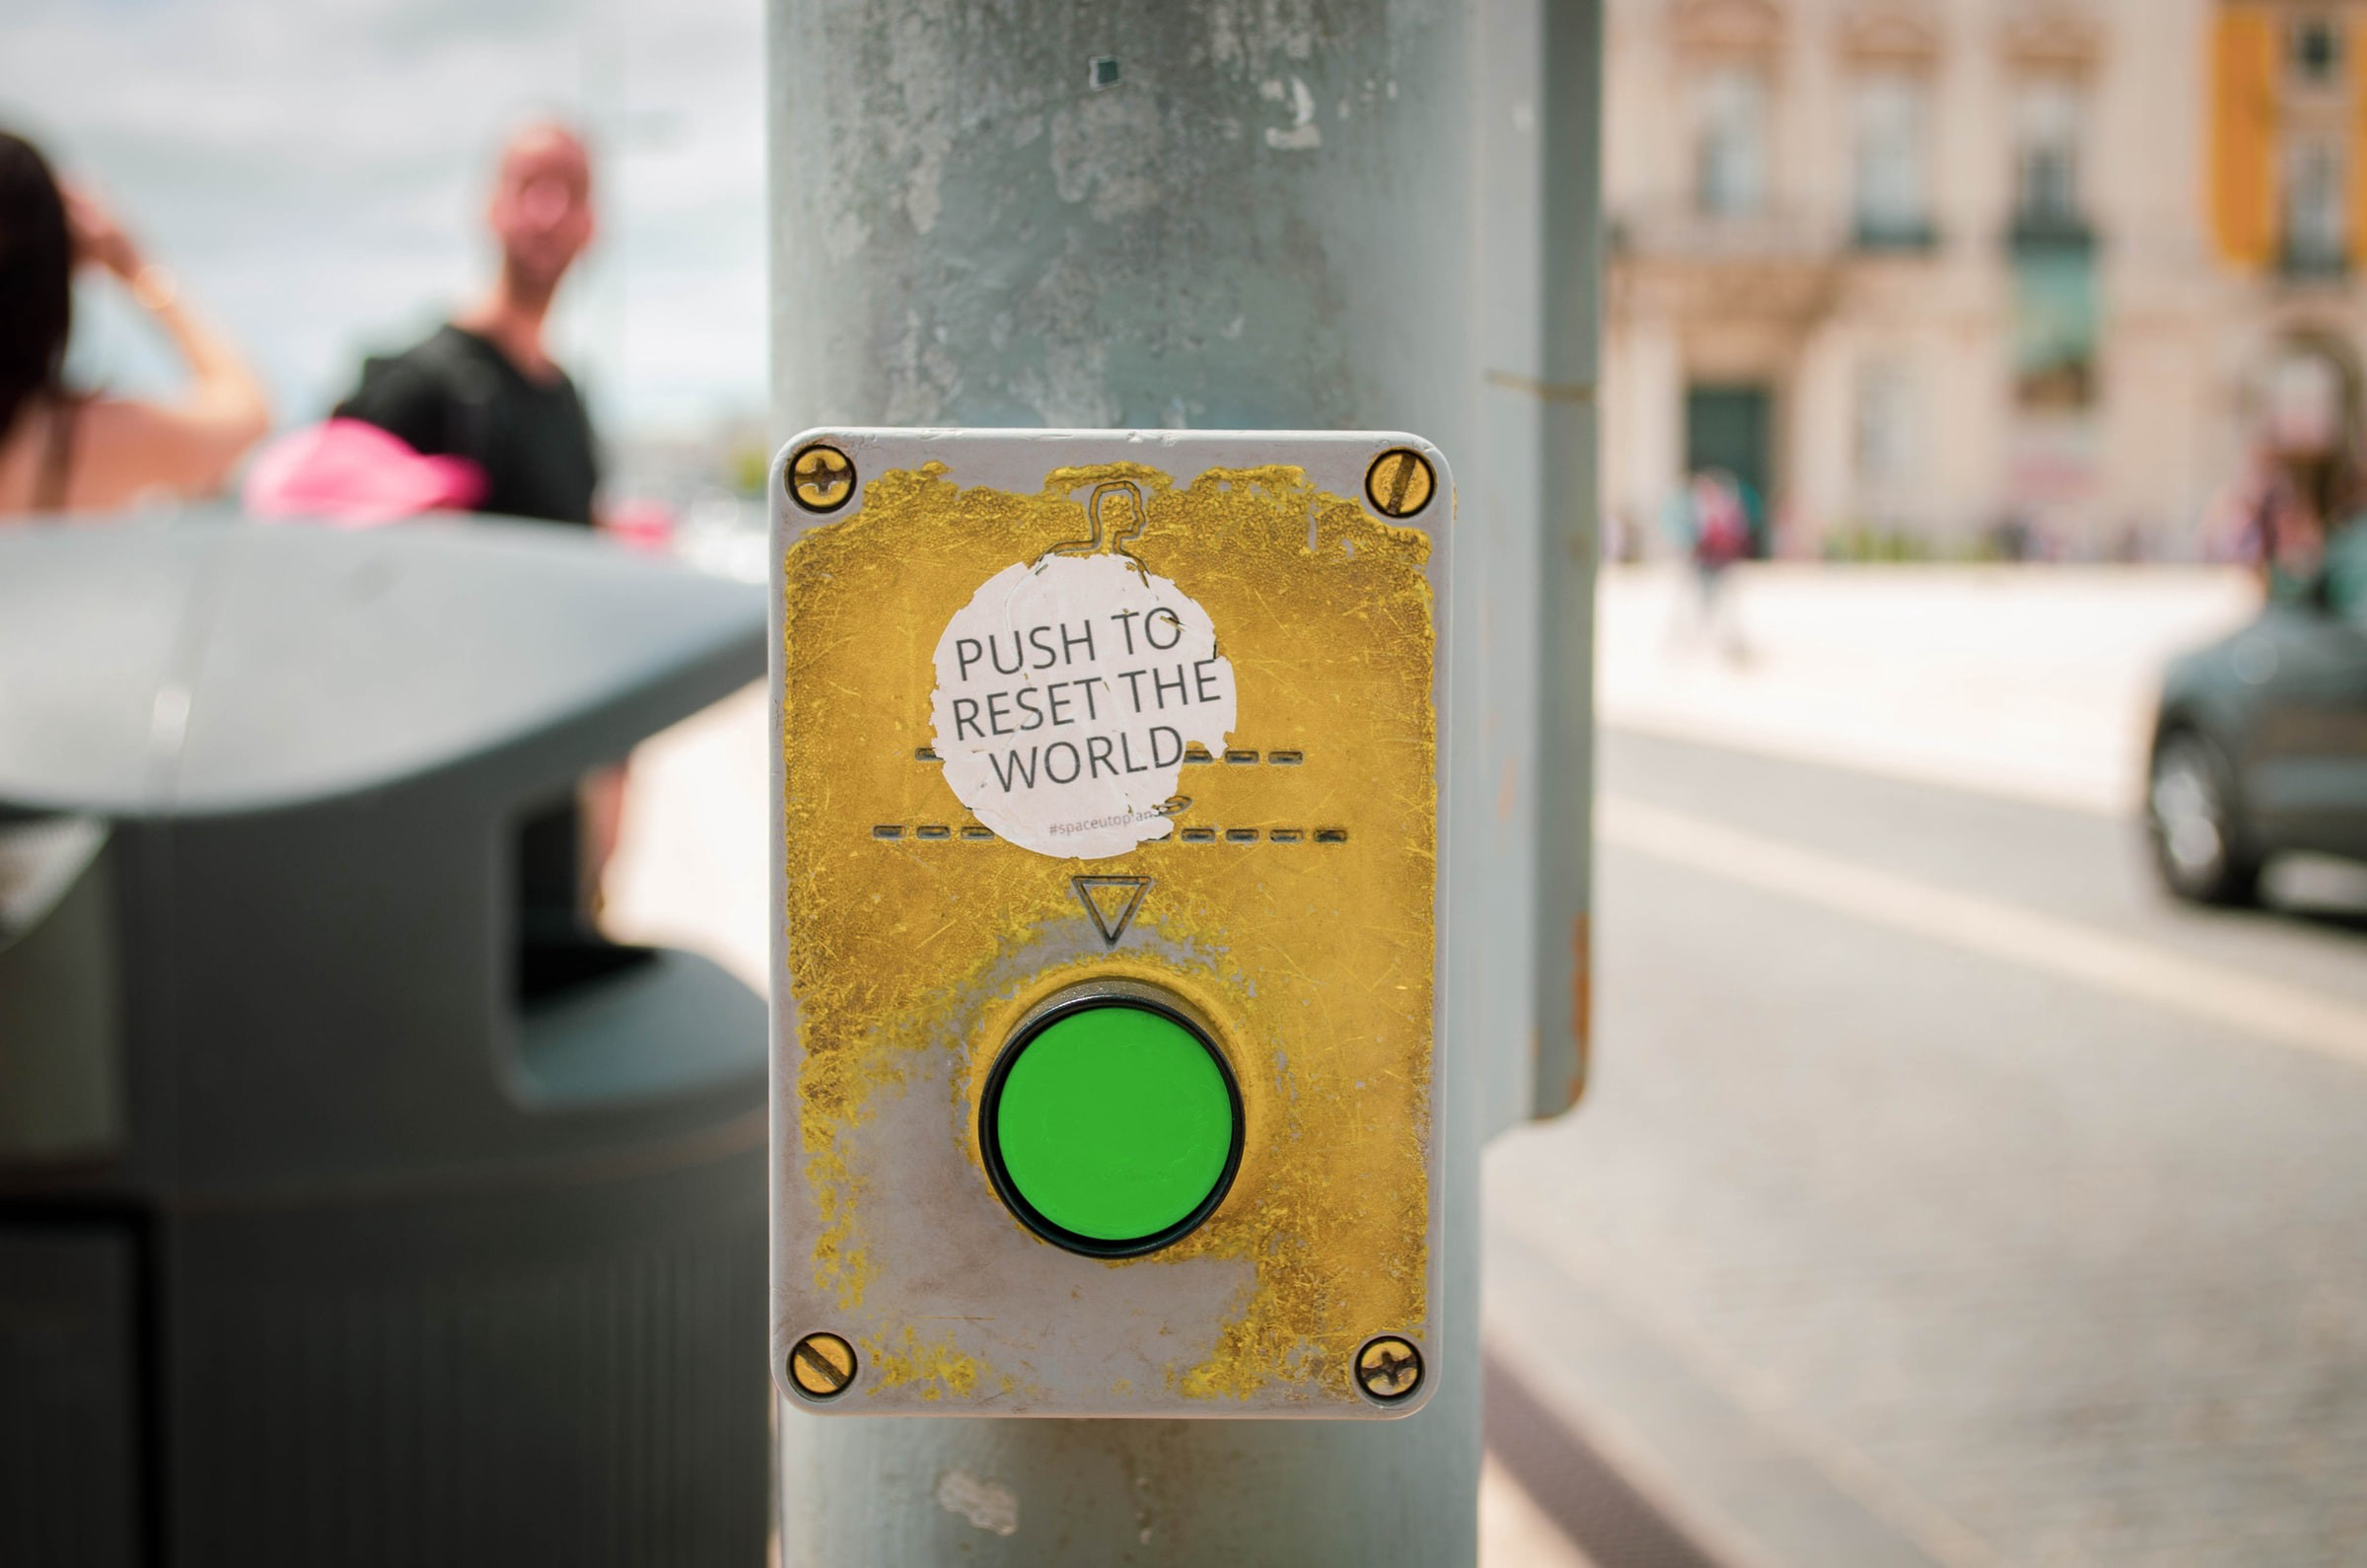 "A green street crosswalk button for pedestrians, with a sticker placed above it that reads ""Push to reset the world""."